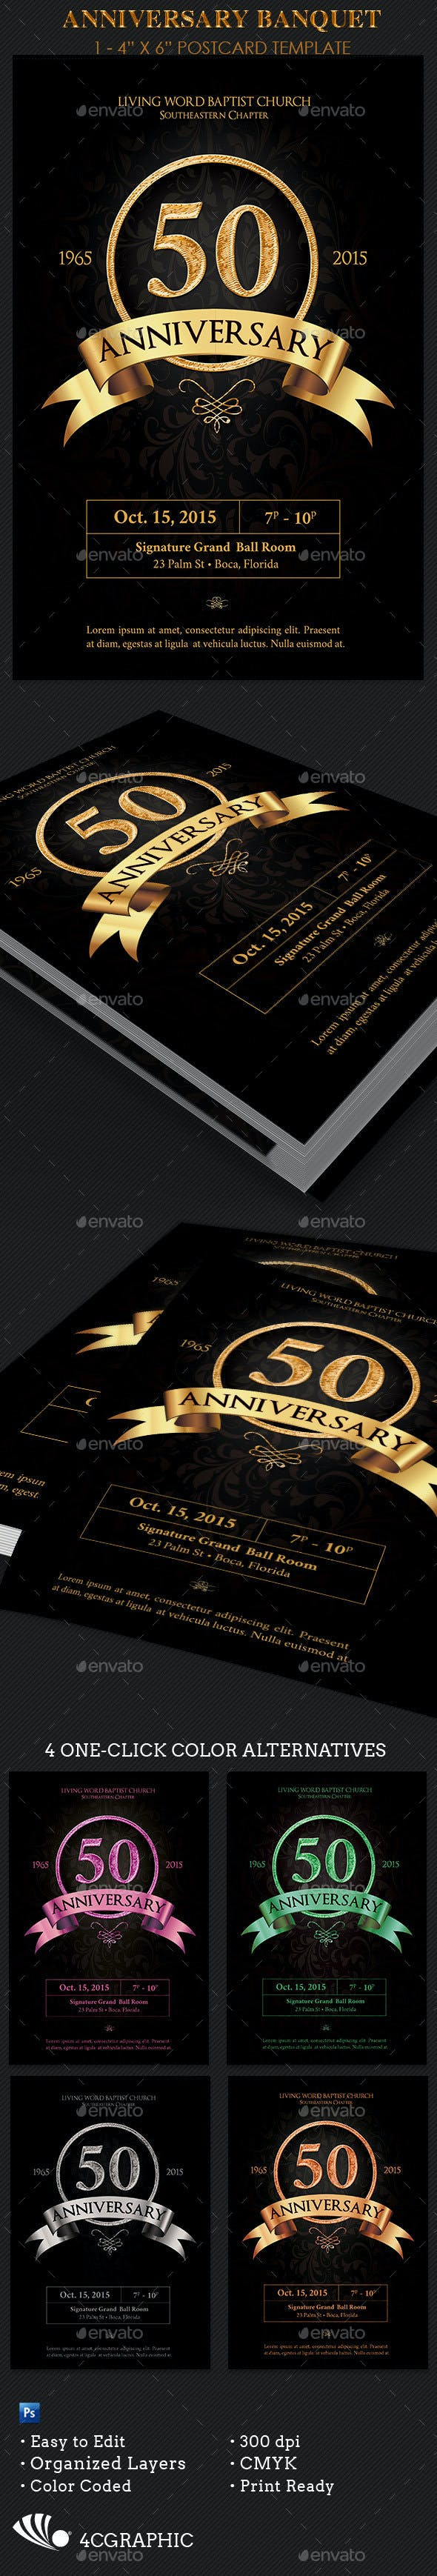 anniversary banquet flyer template by 4cgraphic graphicriver